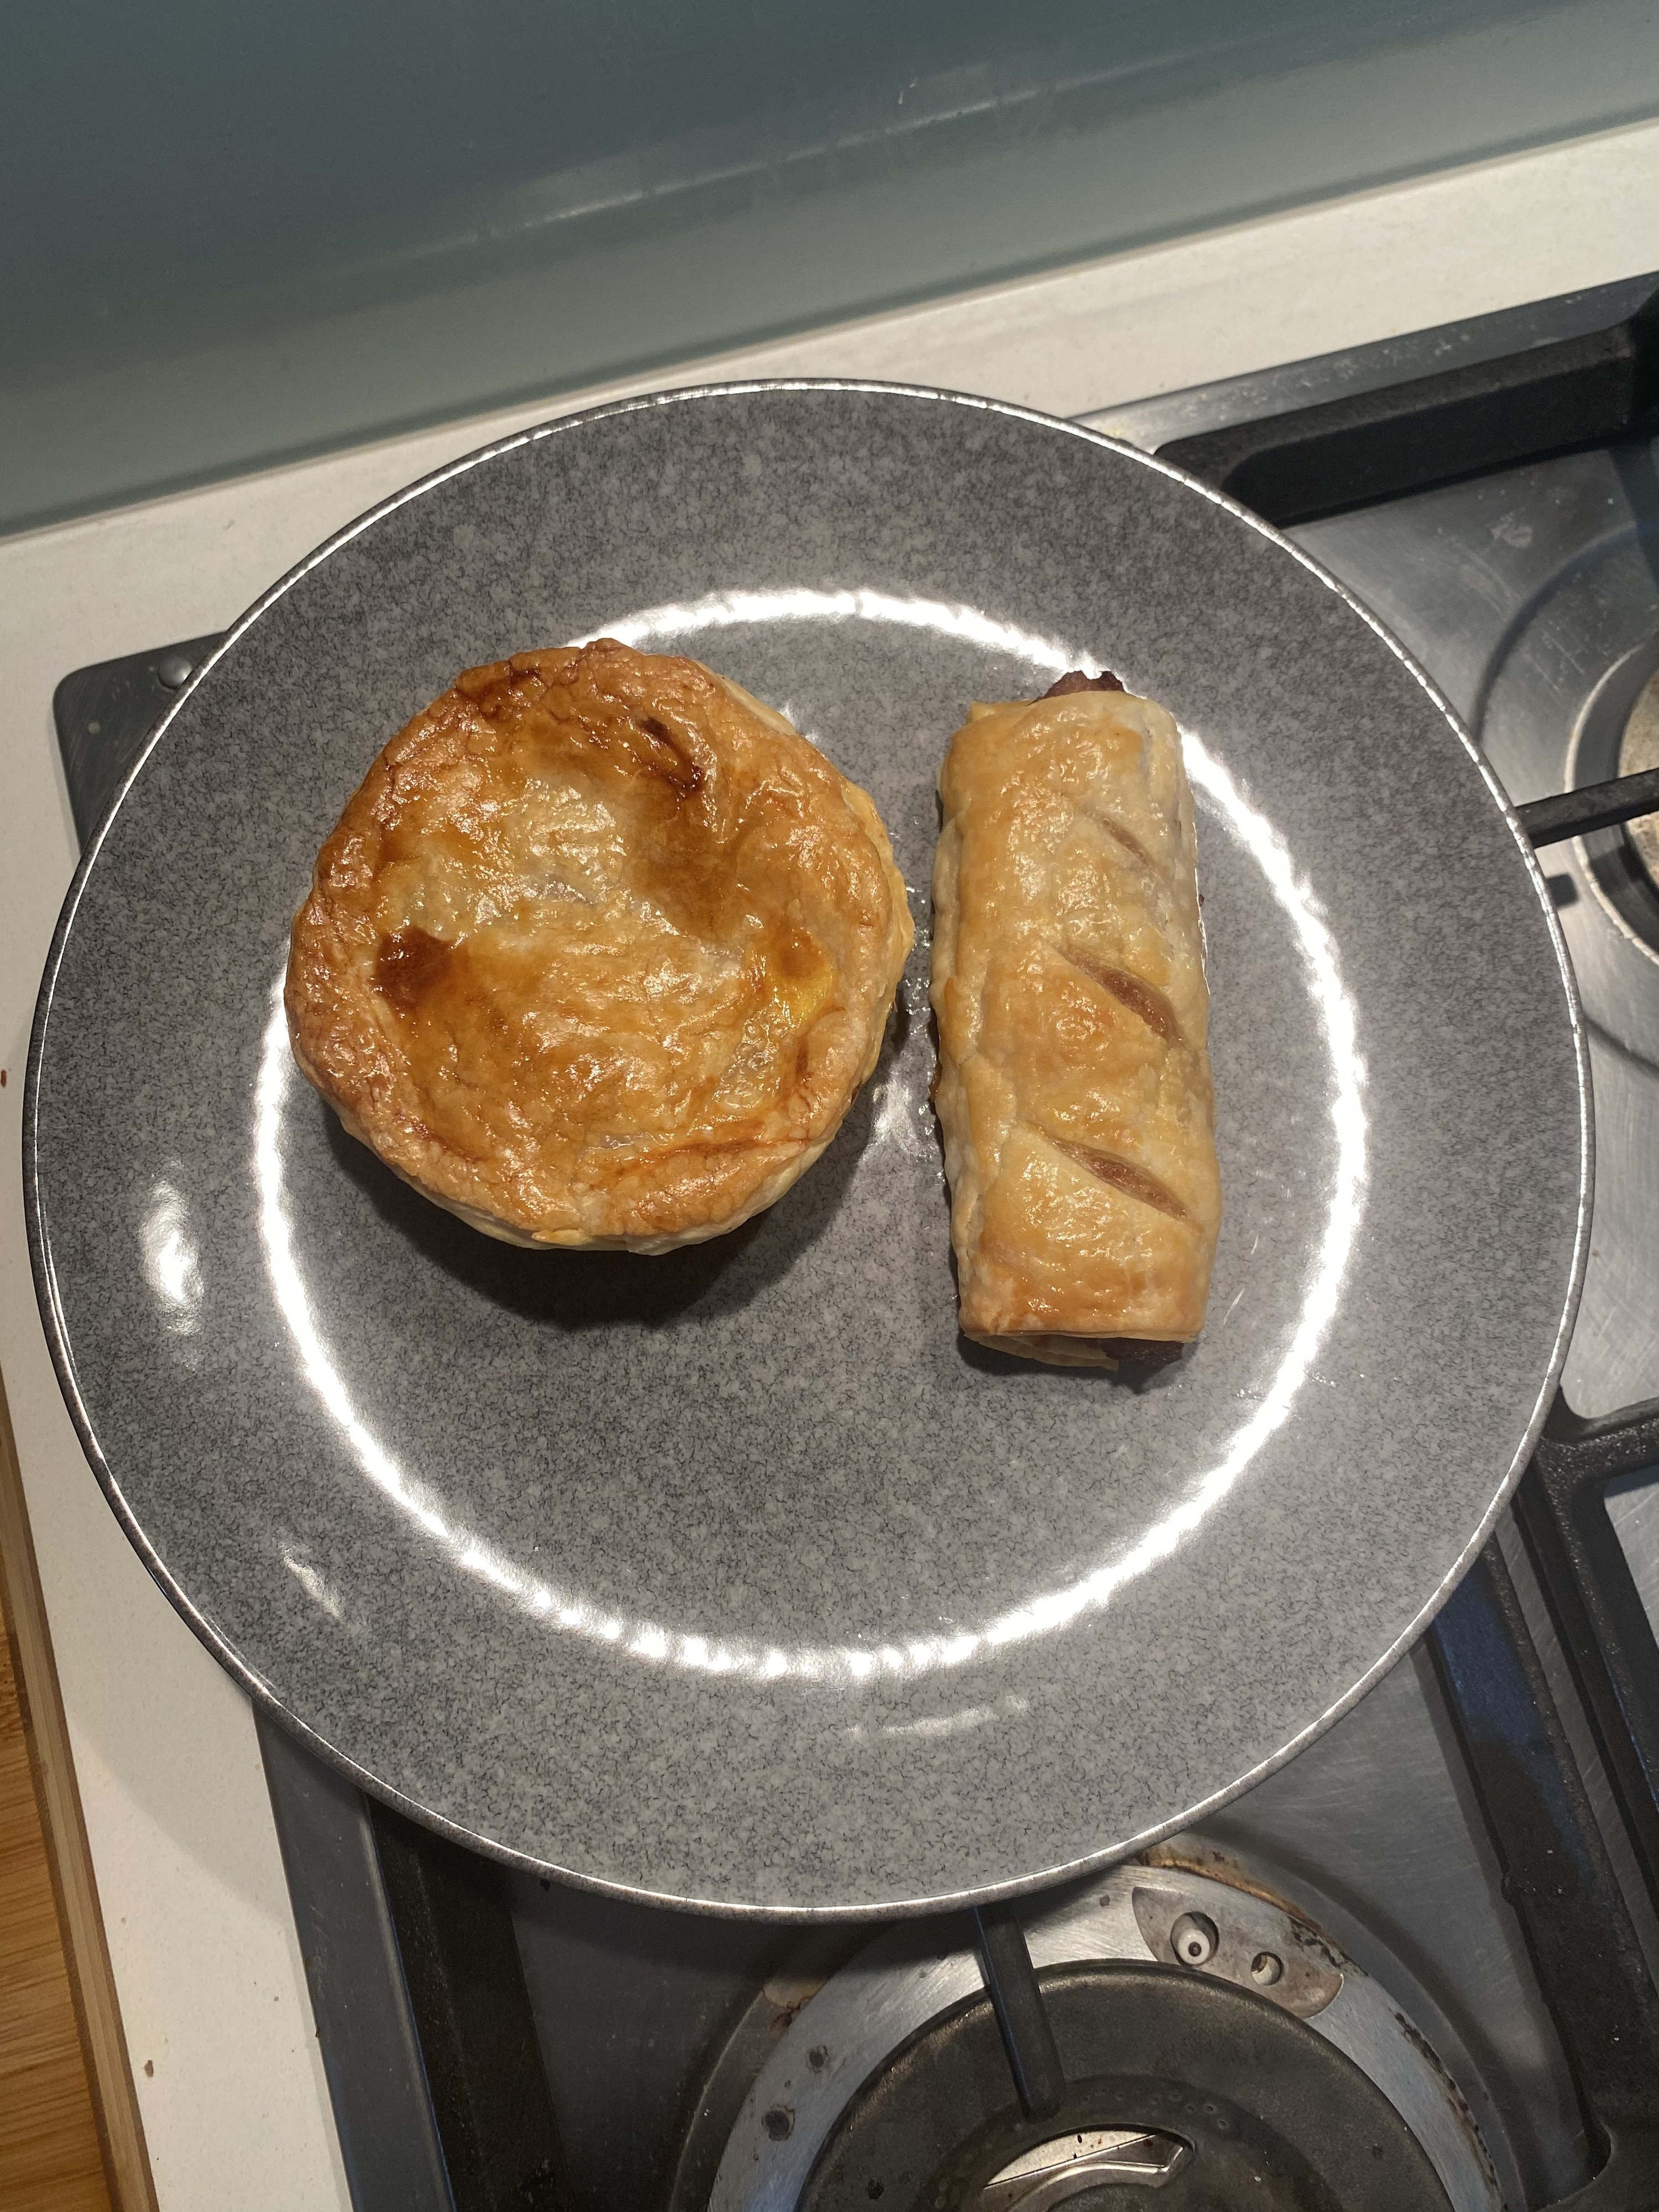 Sausage roll and pie on a plate